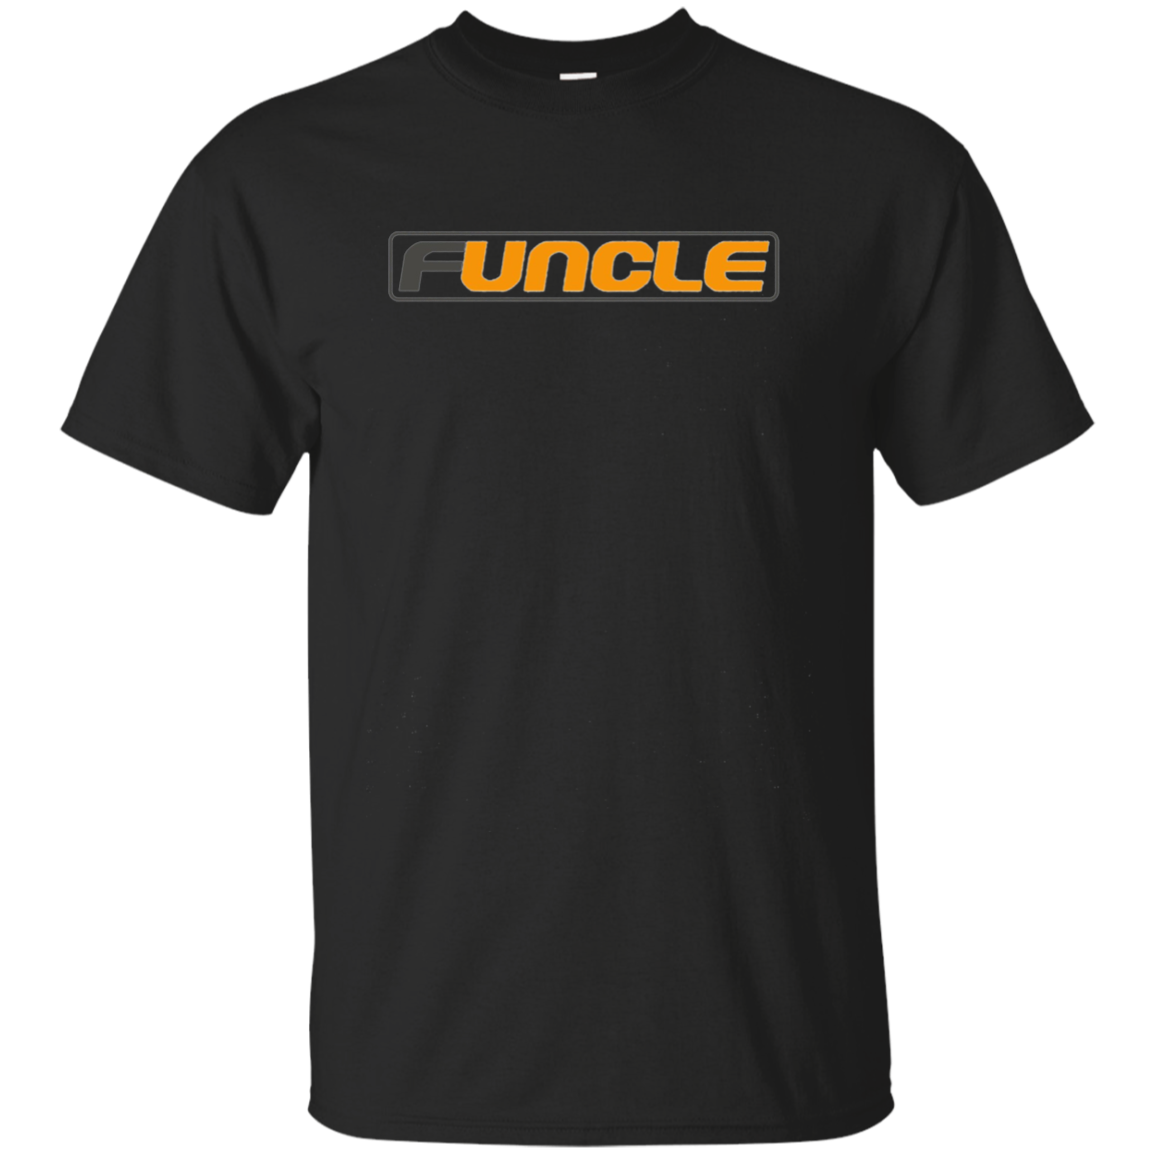 Funcle Long Sleeve T-Shirt - Best For Fun Uncle Gift